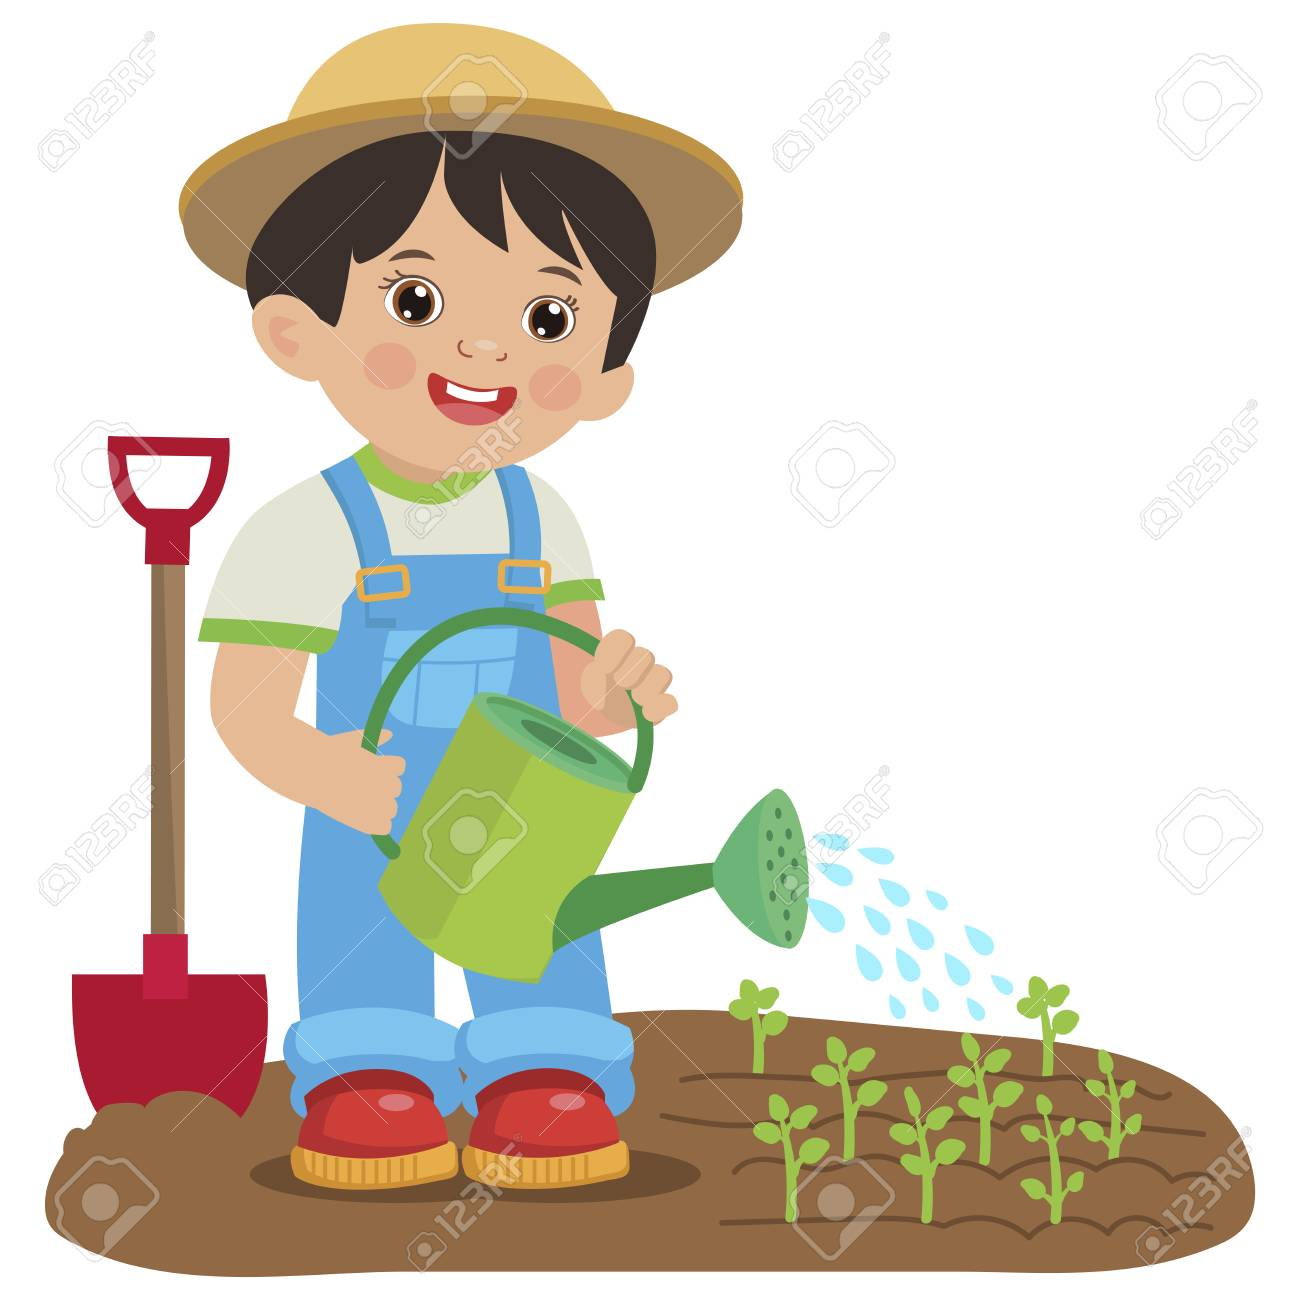 Cute Cartoon Boy With Watering Can Young Farmer Working In The Royalty Free Cliparts Vectors And Stock Illustration Image 124637769